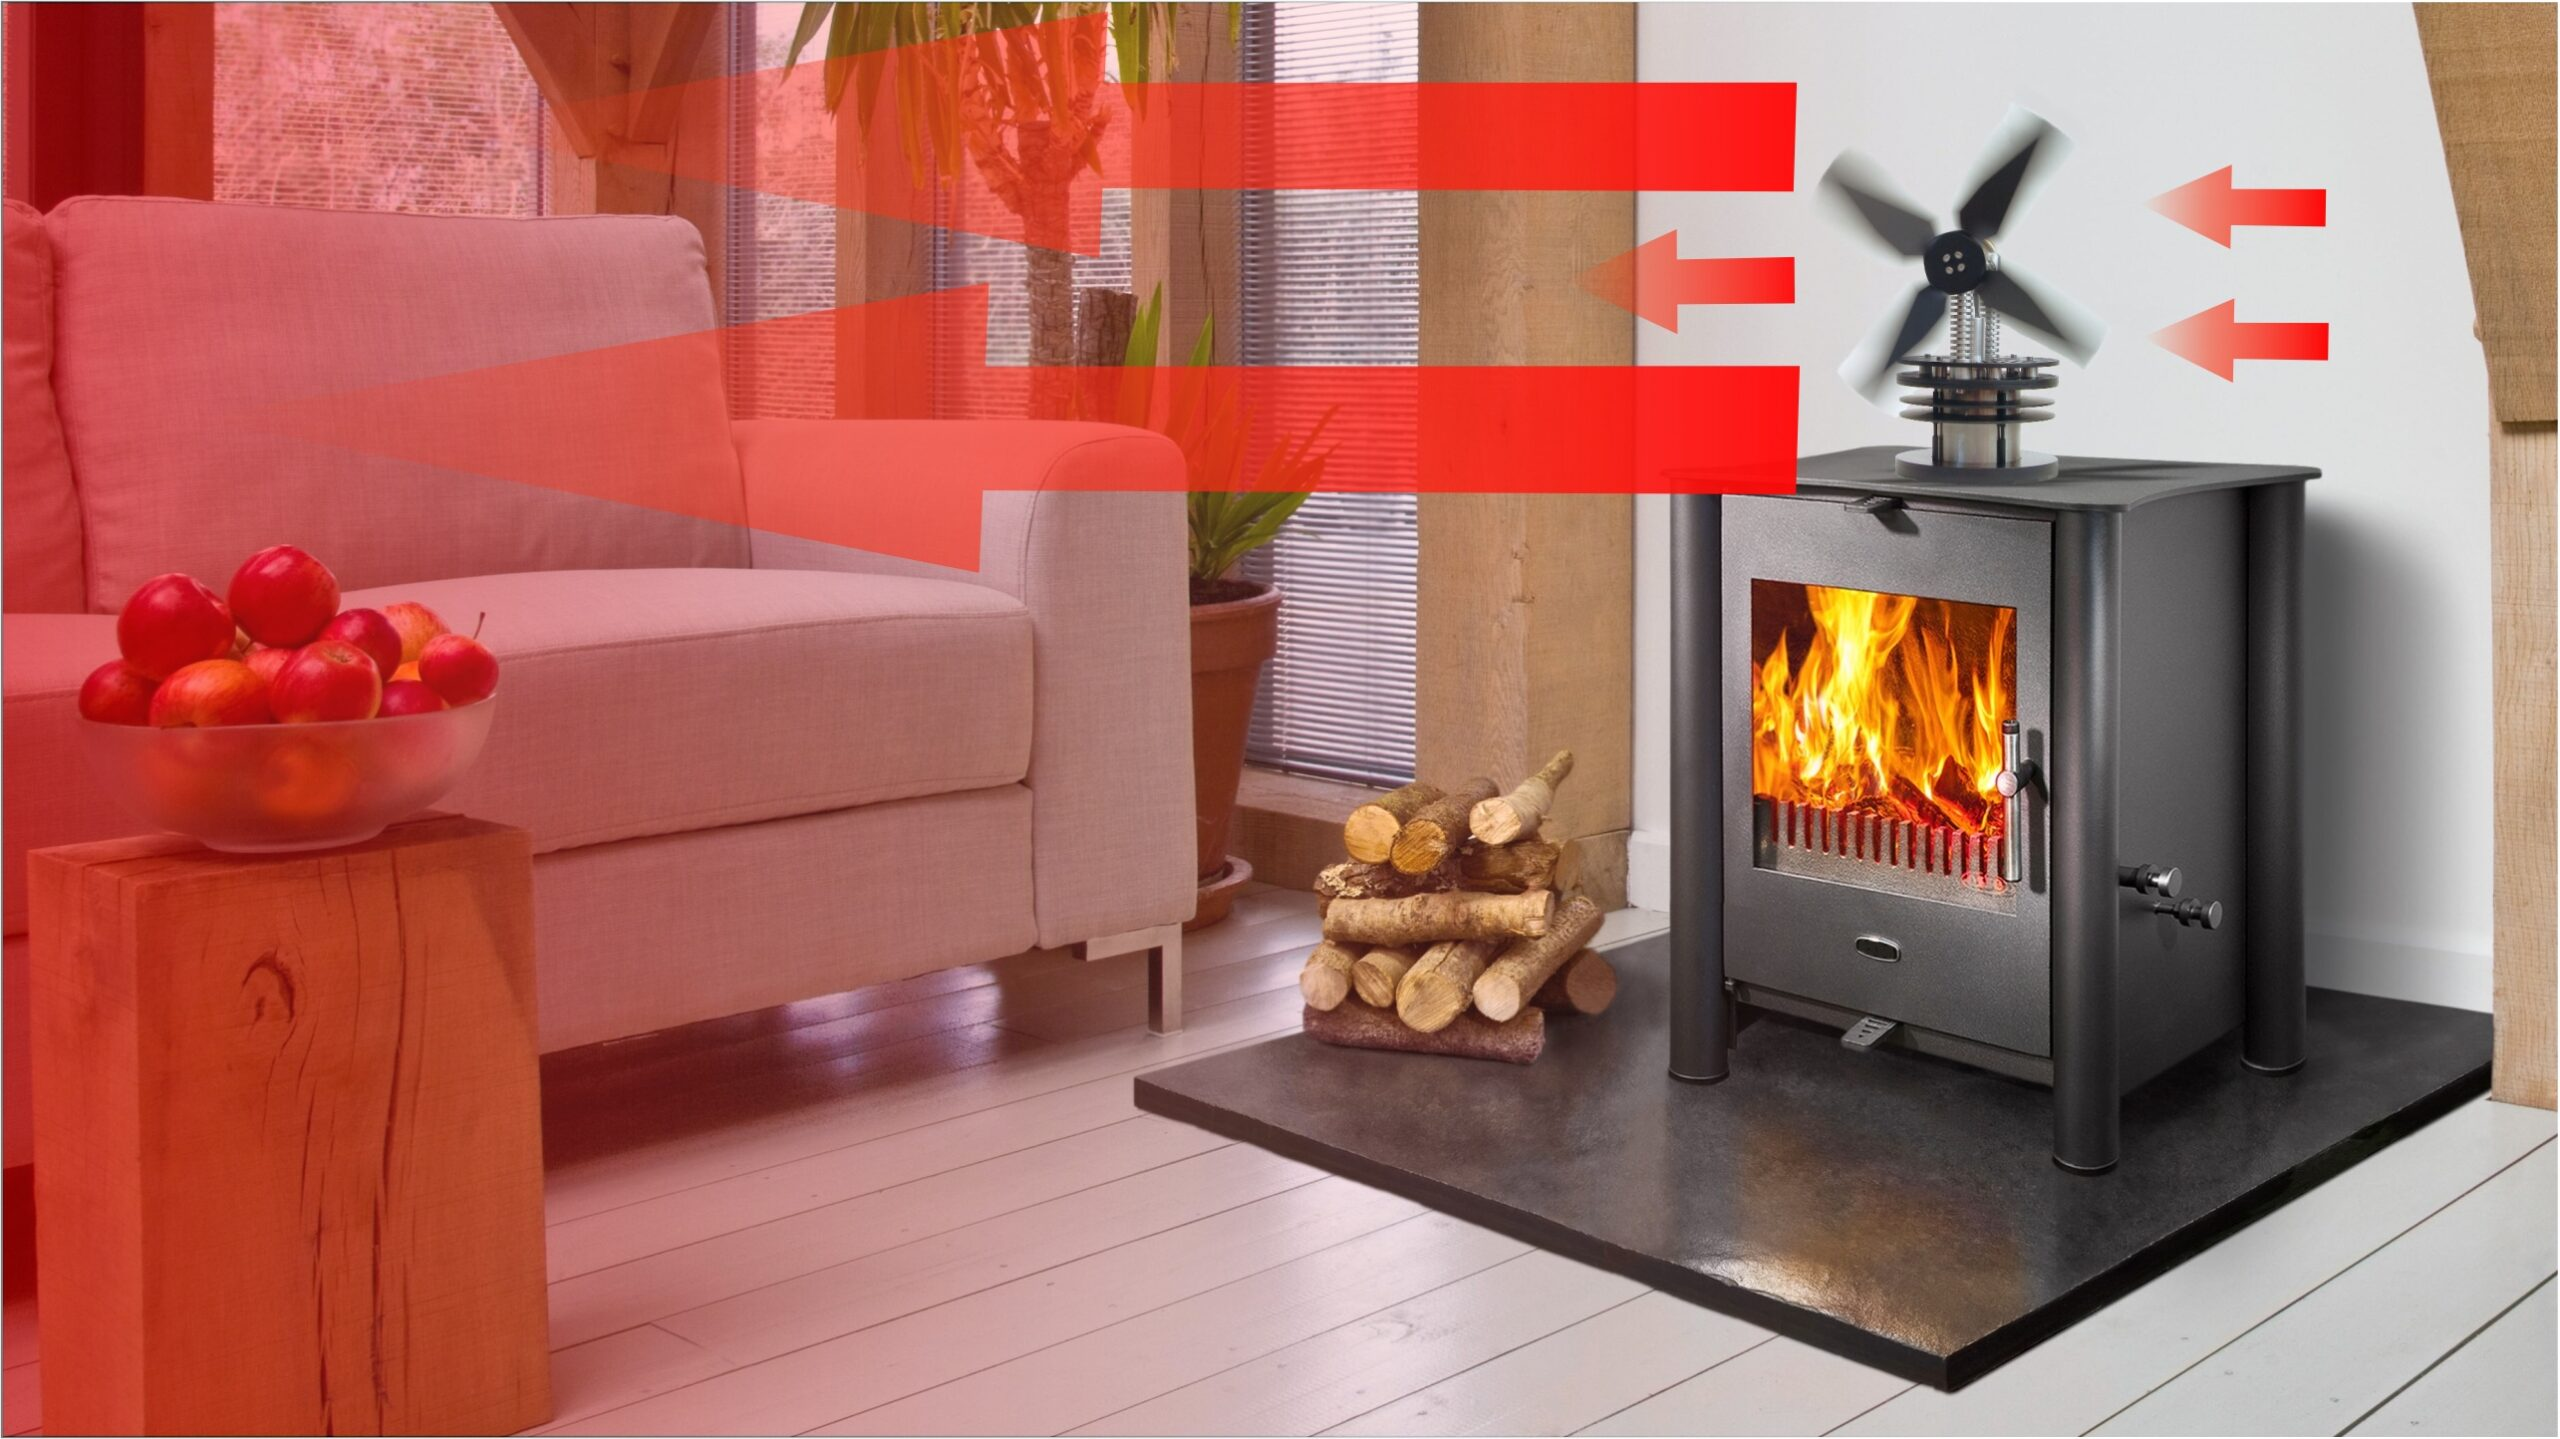 Using heat generated from your wood stove, a stove fan will circulate the warm air throughout your room. Stirling engine stove fans are extremely powerful and able to move large volumes of air. This saves on fuel and makes your home more comfortable.